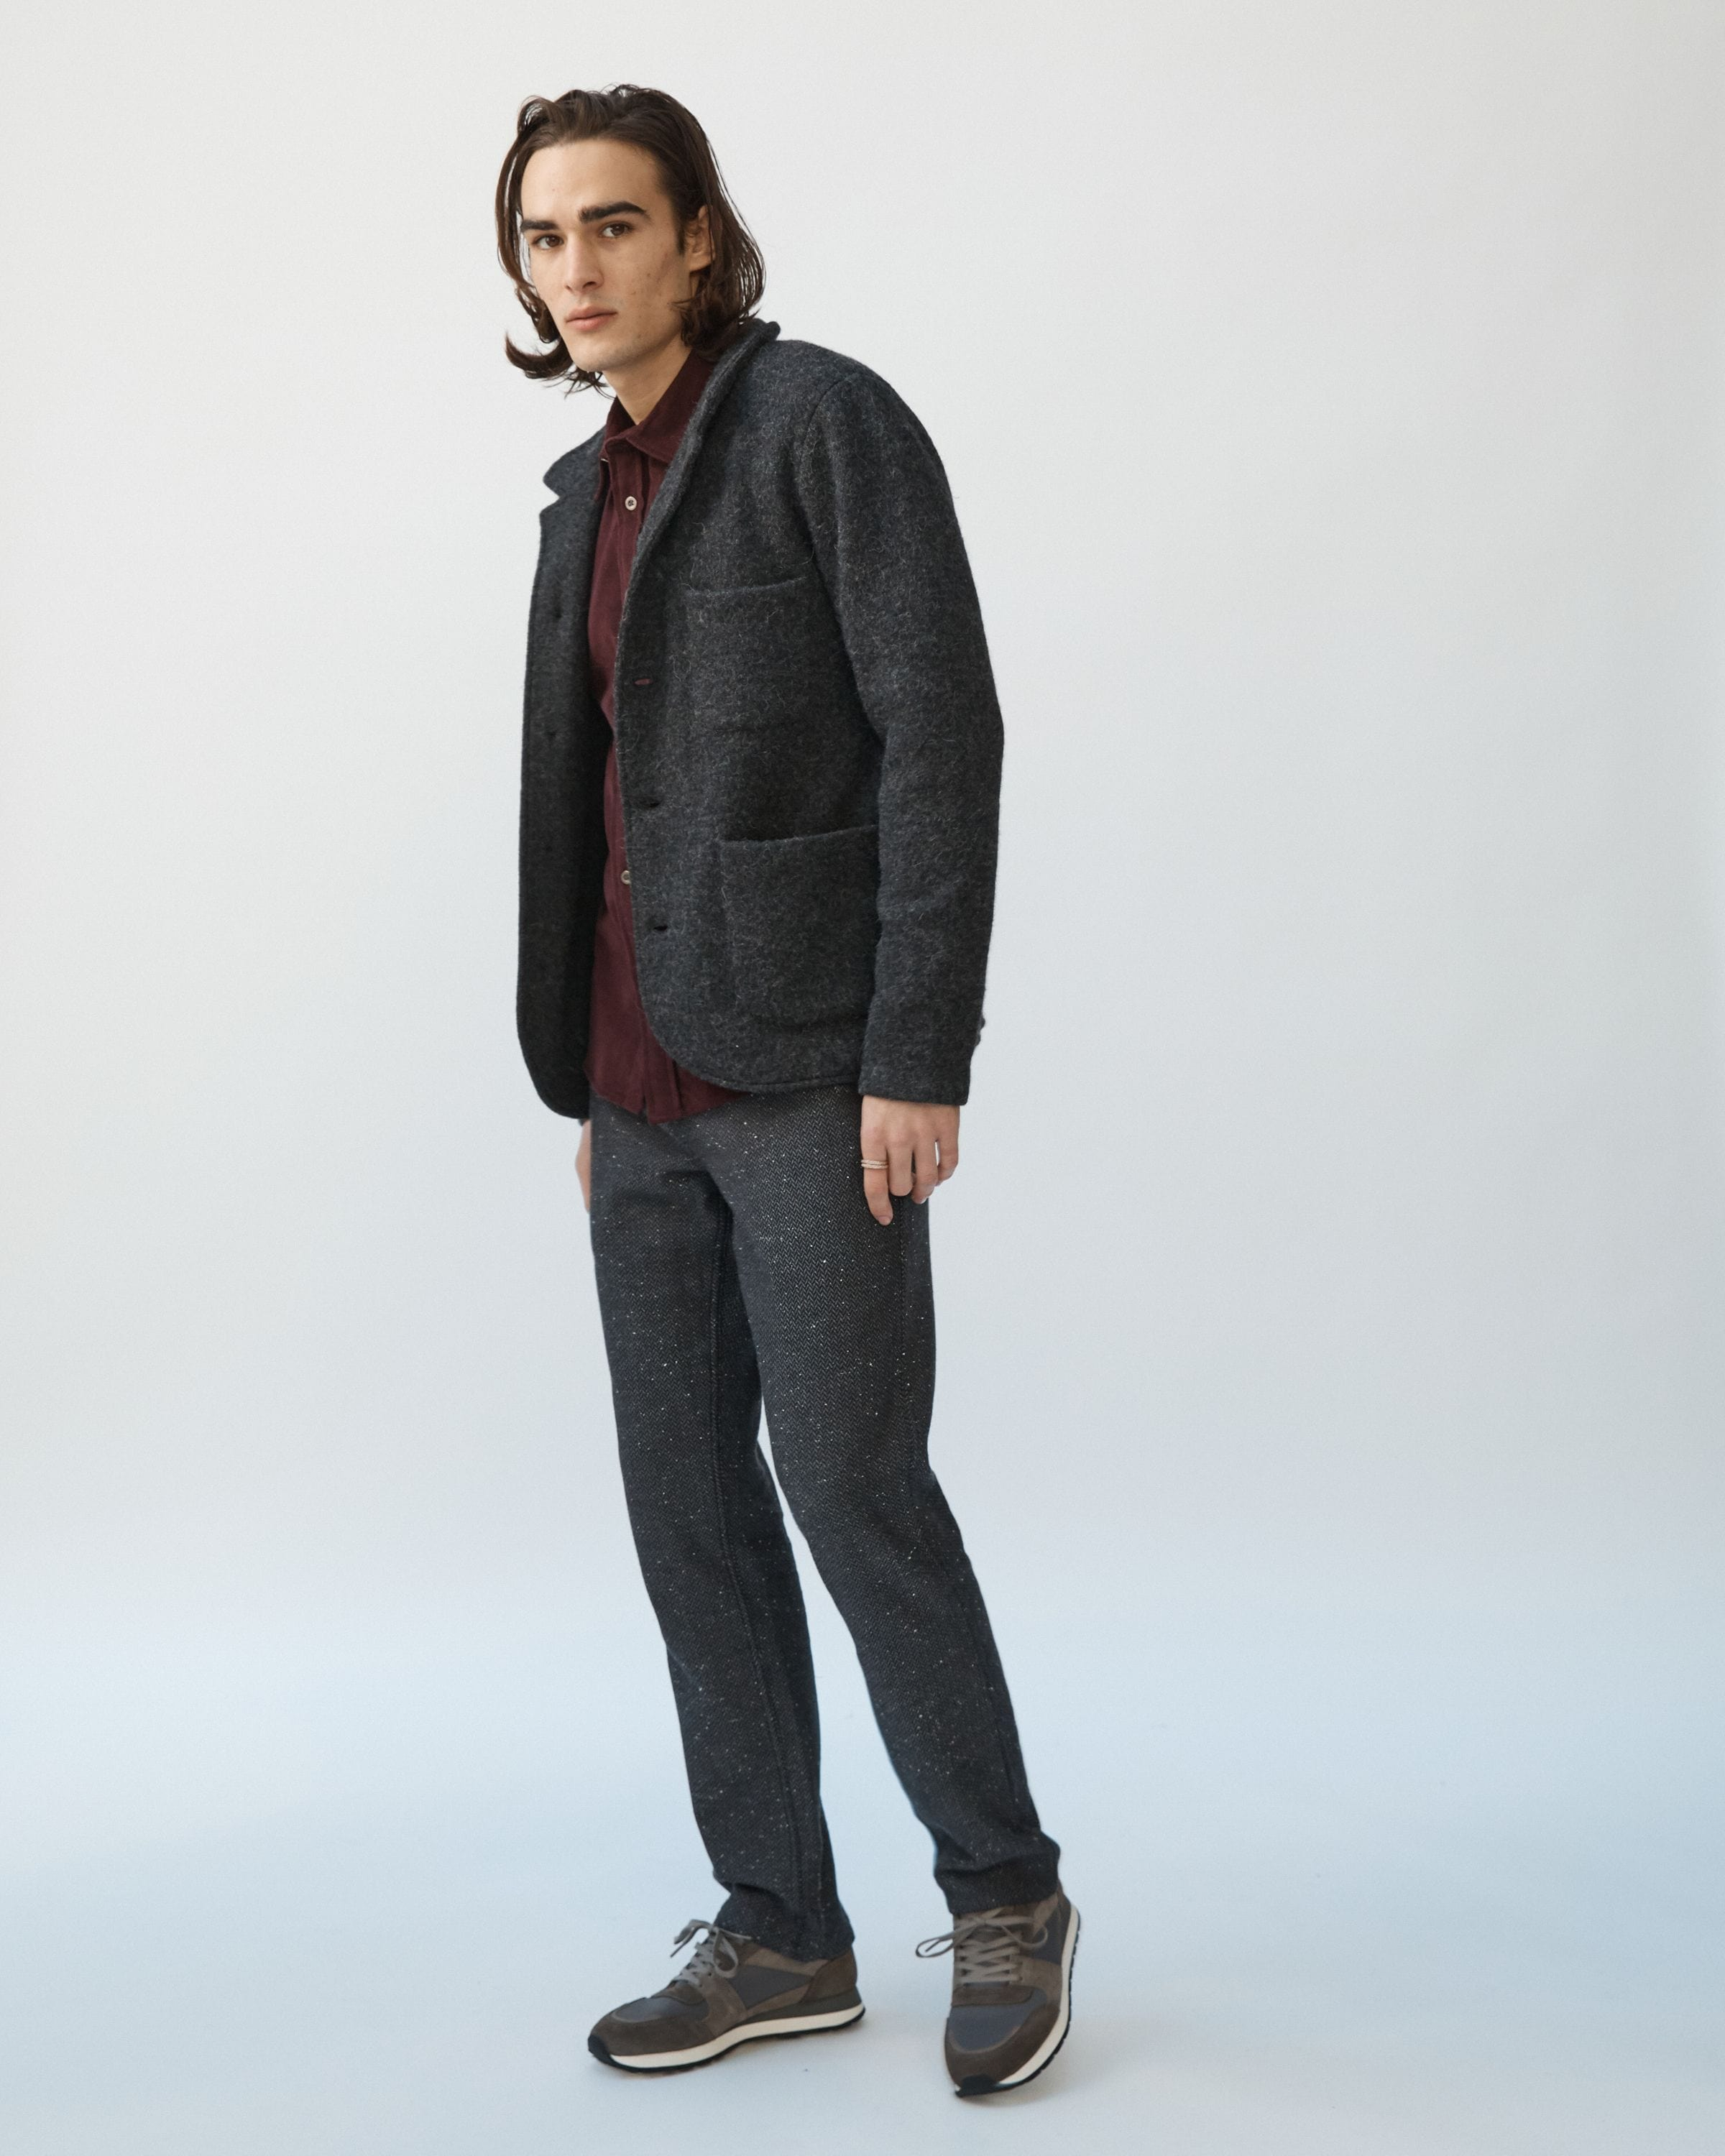 Blazer Cardigan - Boiled Wool / Alpaca - Double Jersey - Charcoal